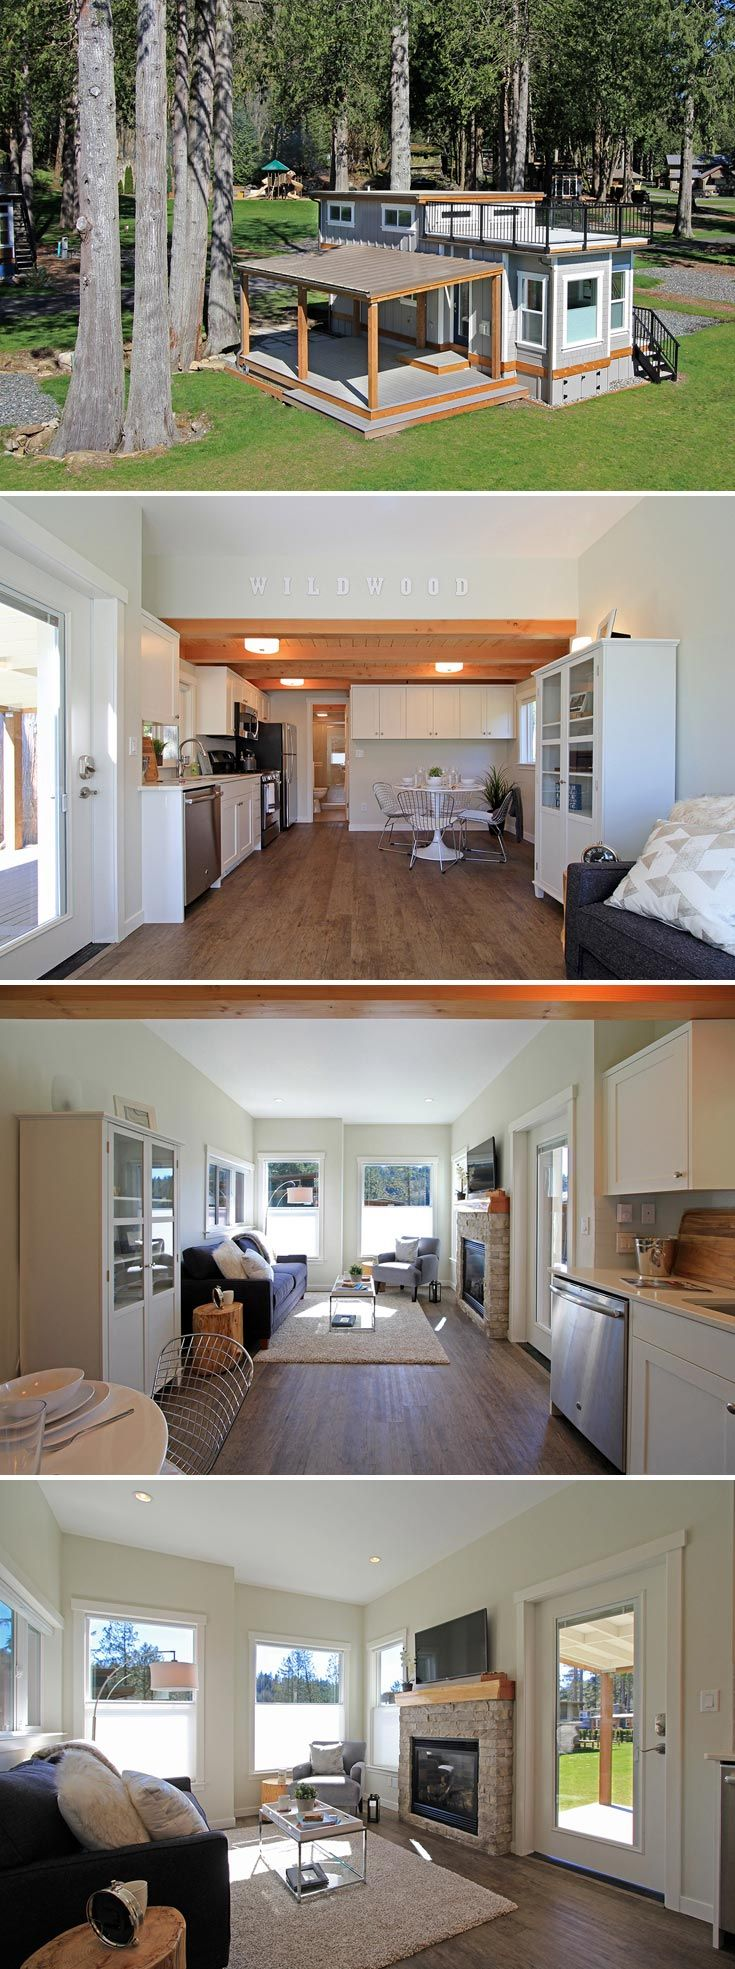 The bellevue is one of four west coast homes park model tiny houses available at wildwood lakefront cottages located along lake whatcom wa also by small spaces and house rh pinterest